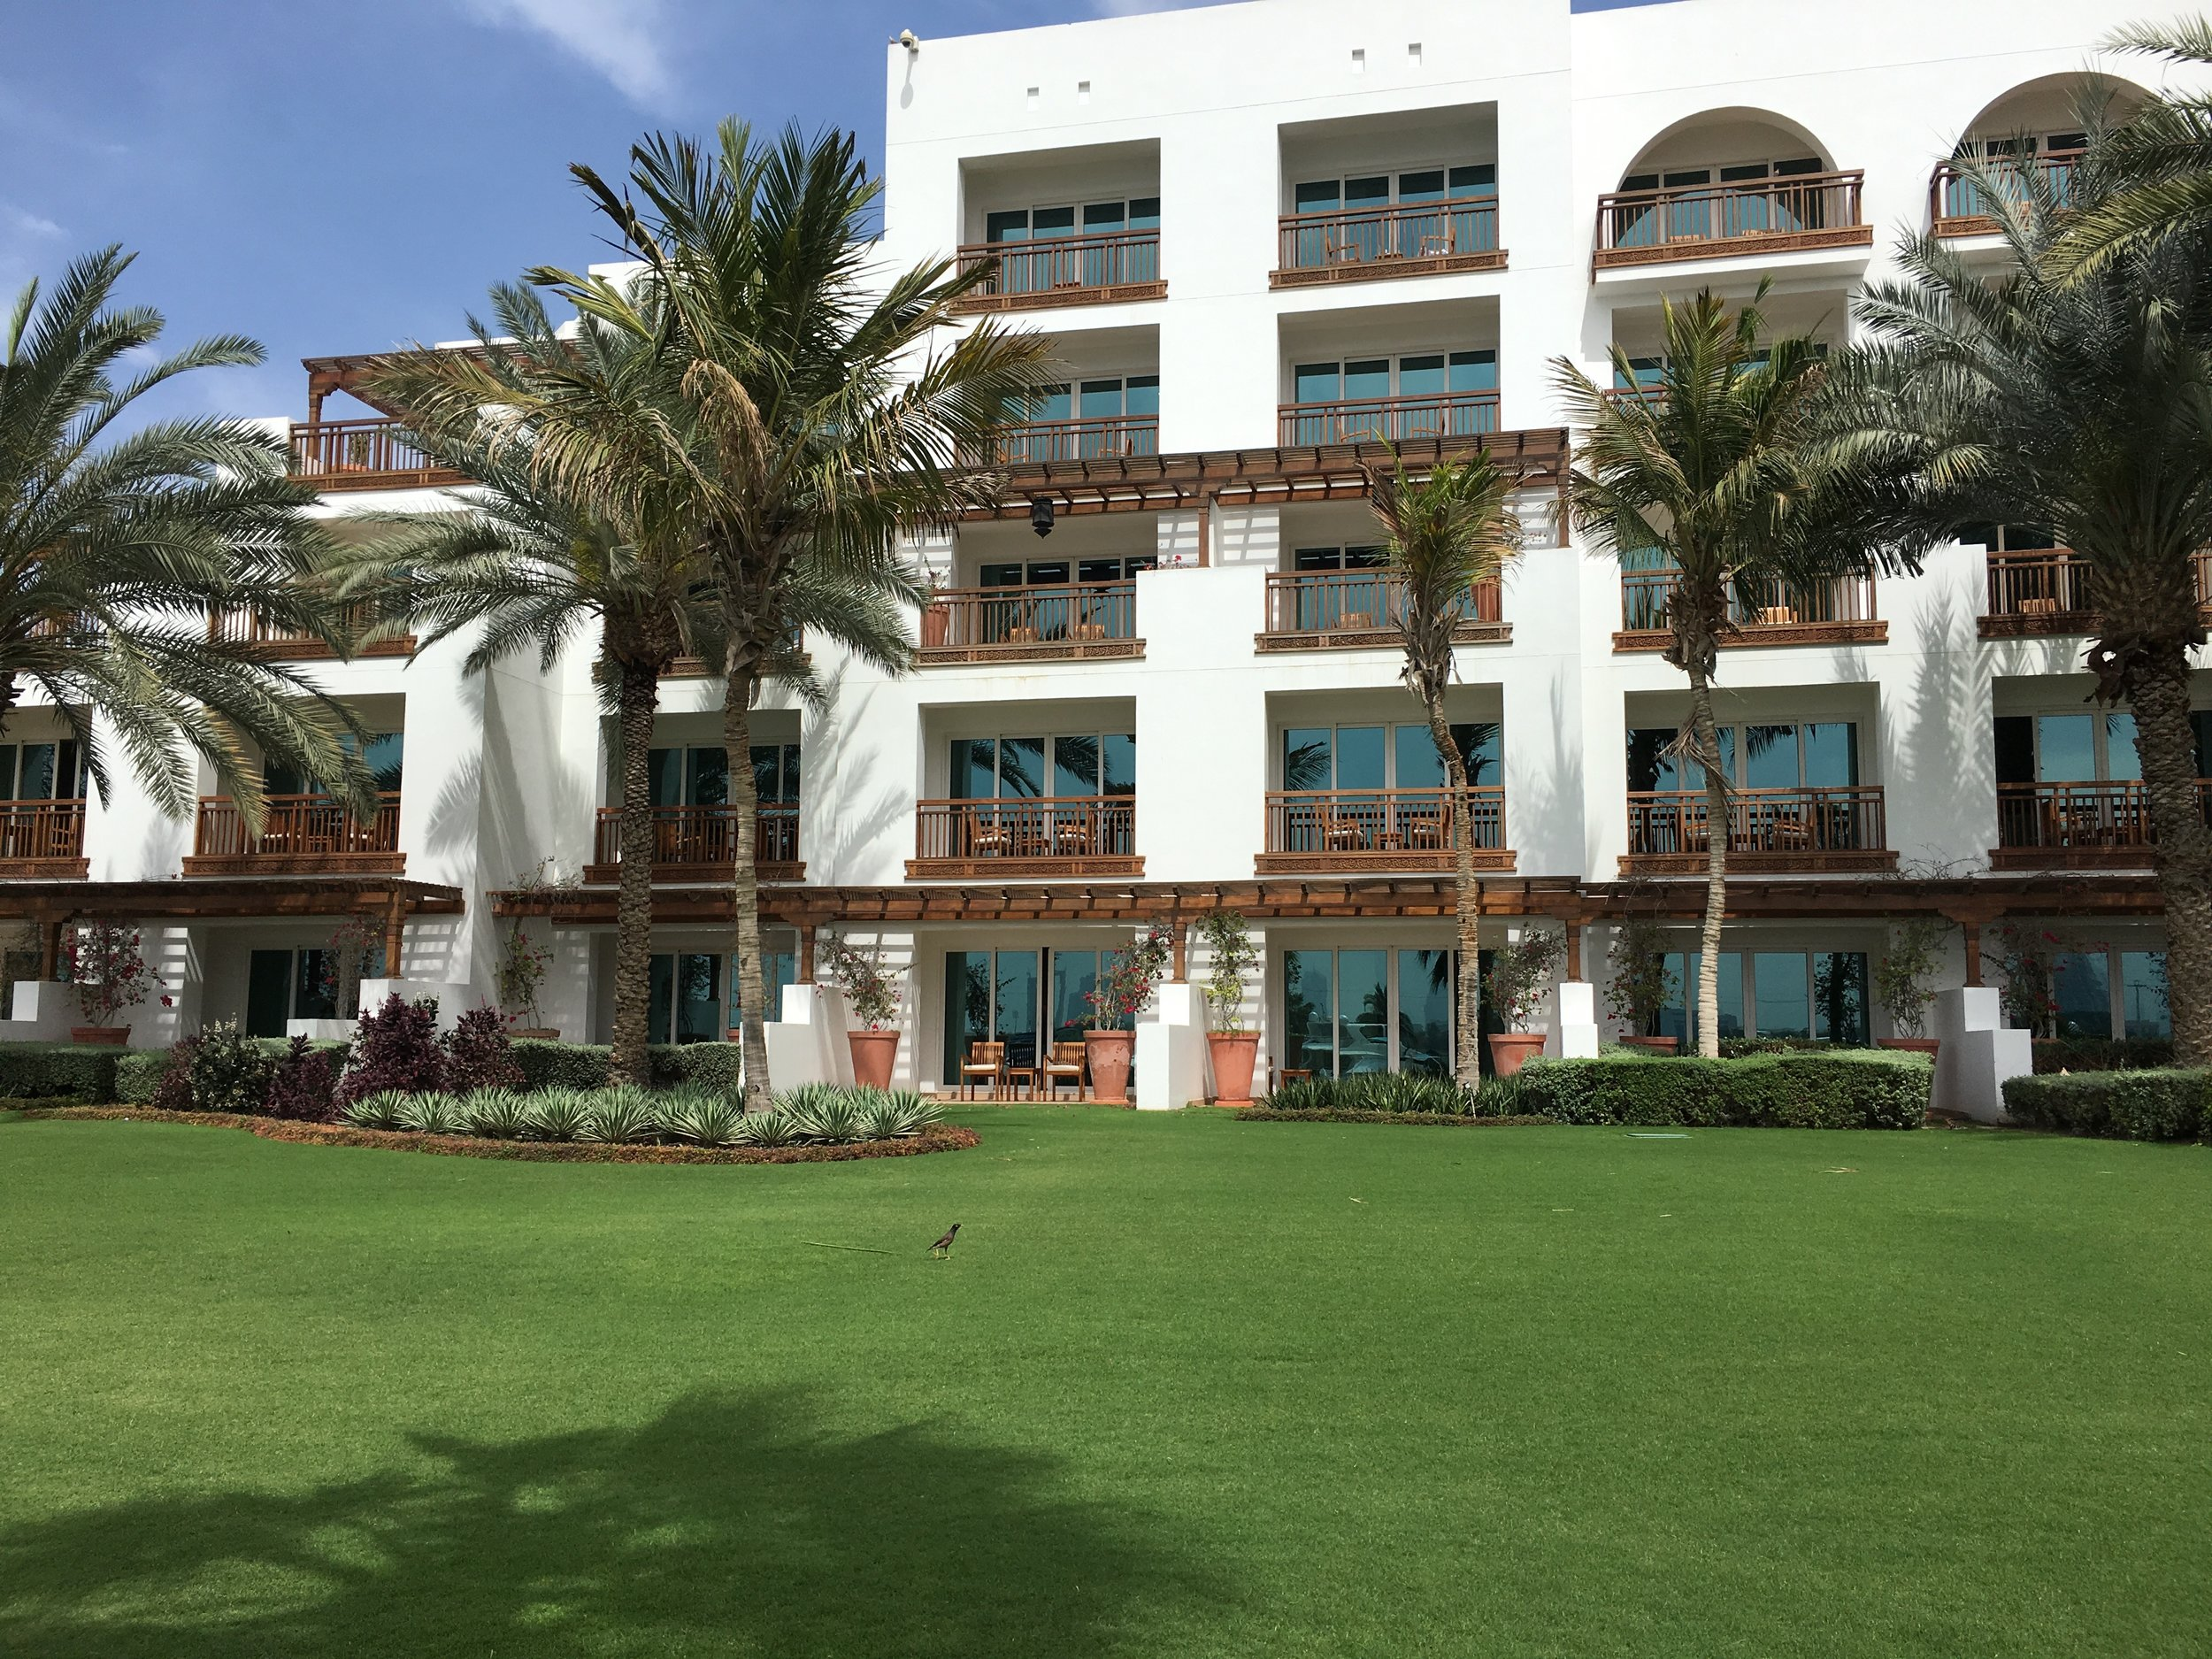 Looking at our room from the outside park - the ground floor terrace in the center